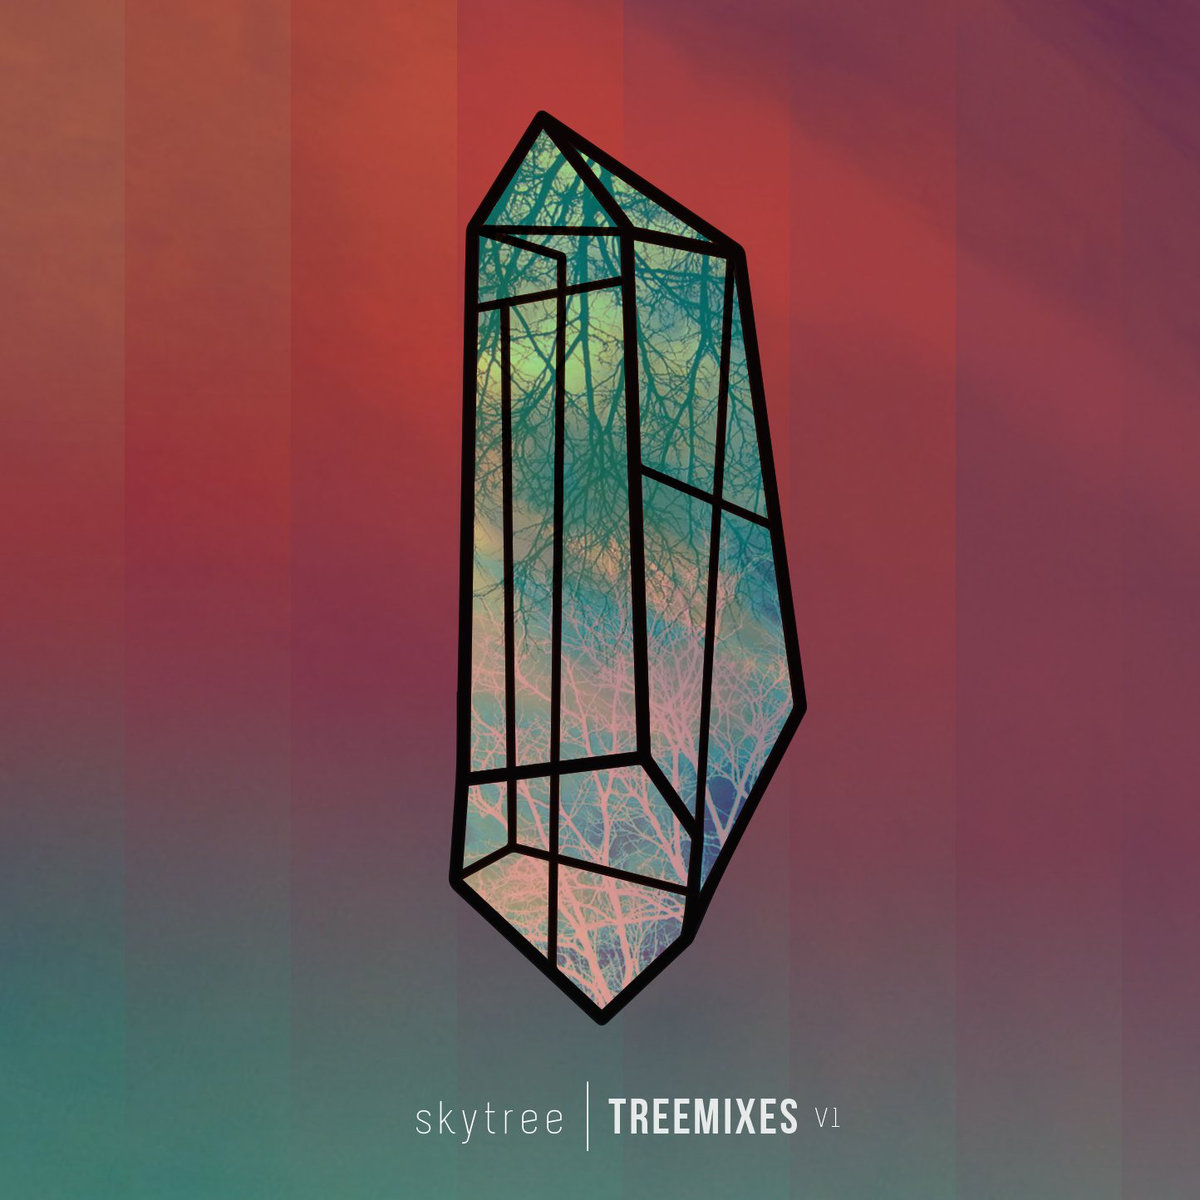 Skytree - Night Heron (Eelko remix) @ 'Treemixes V1' album (Austin)